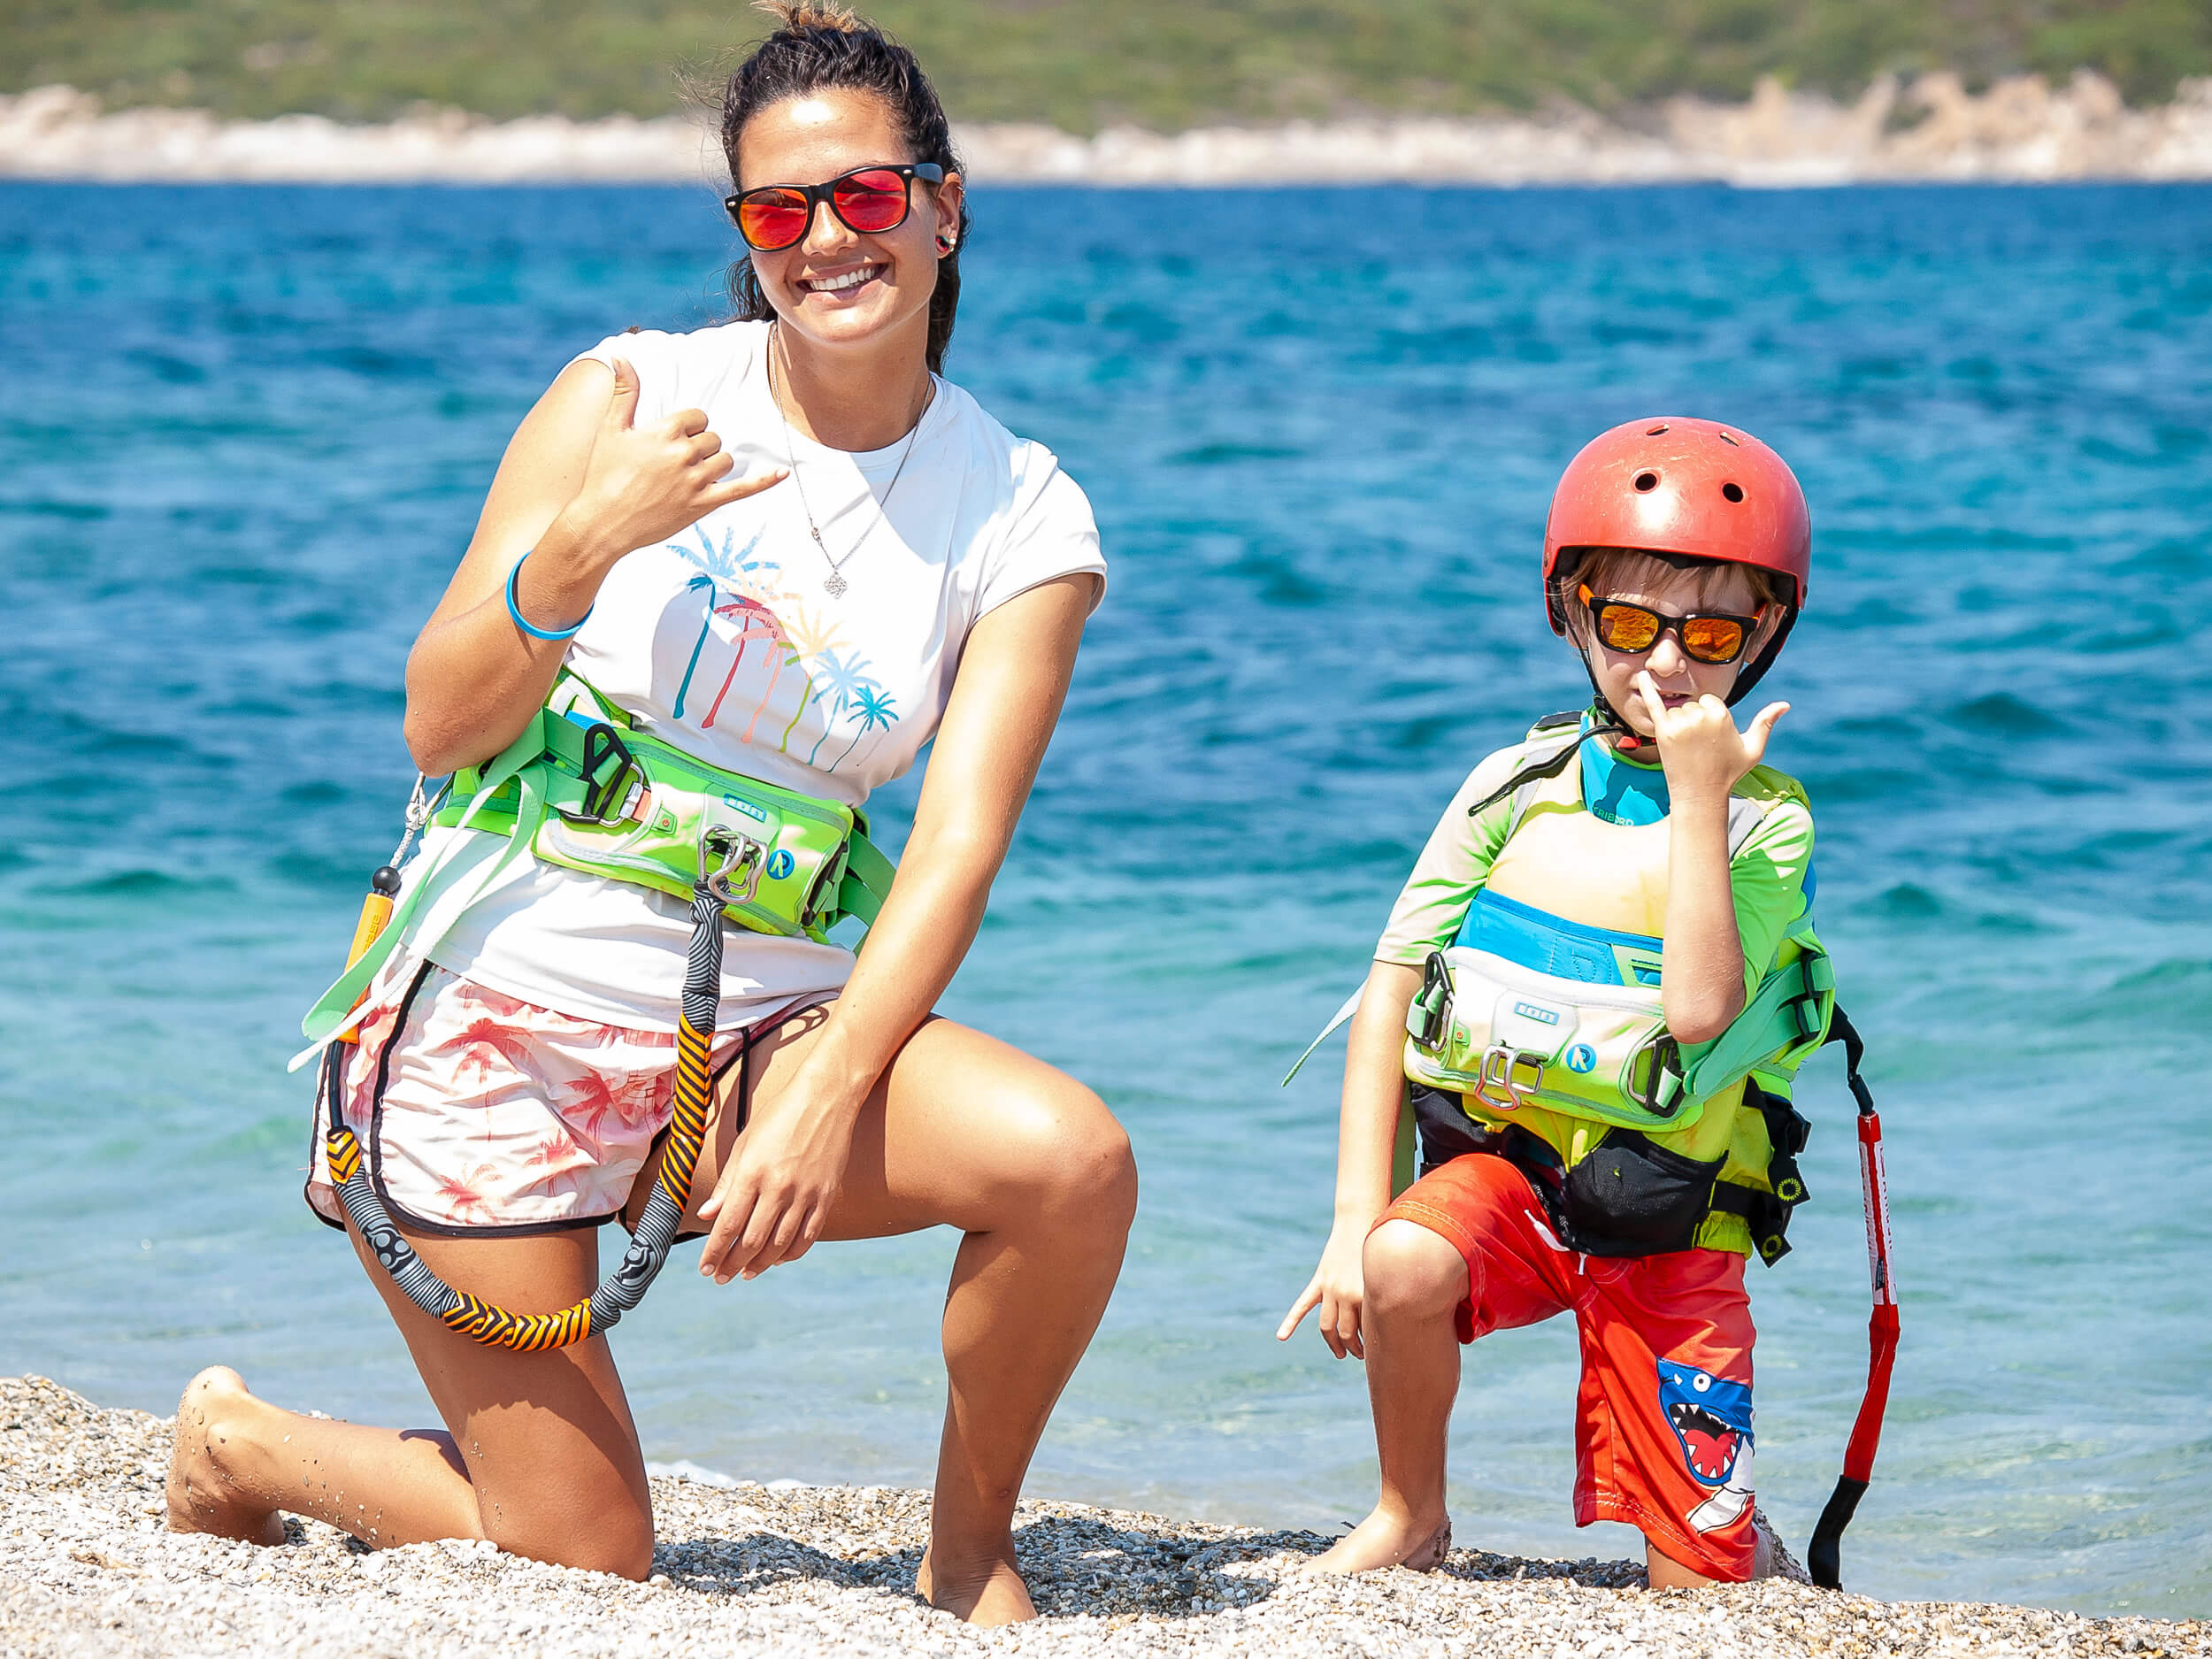 Childrens kitesurfing lessons in Greece Evia Island